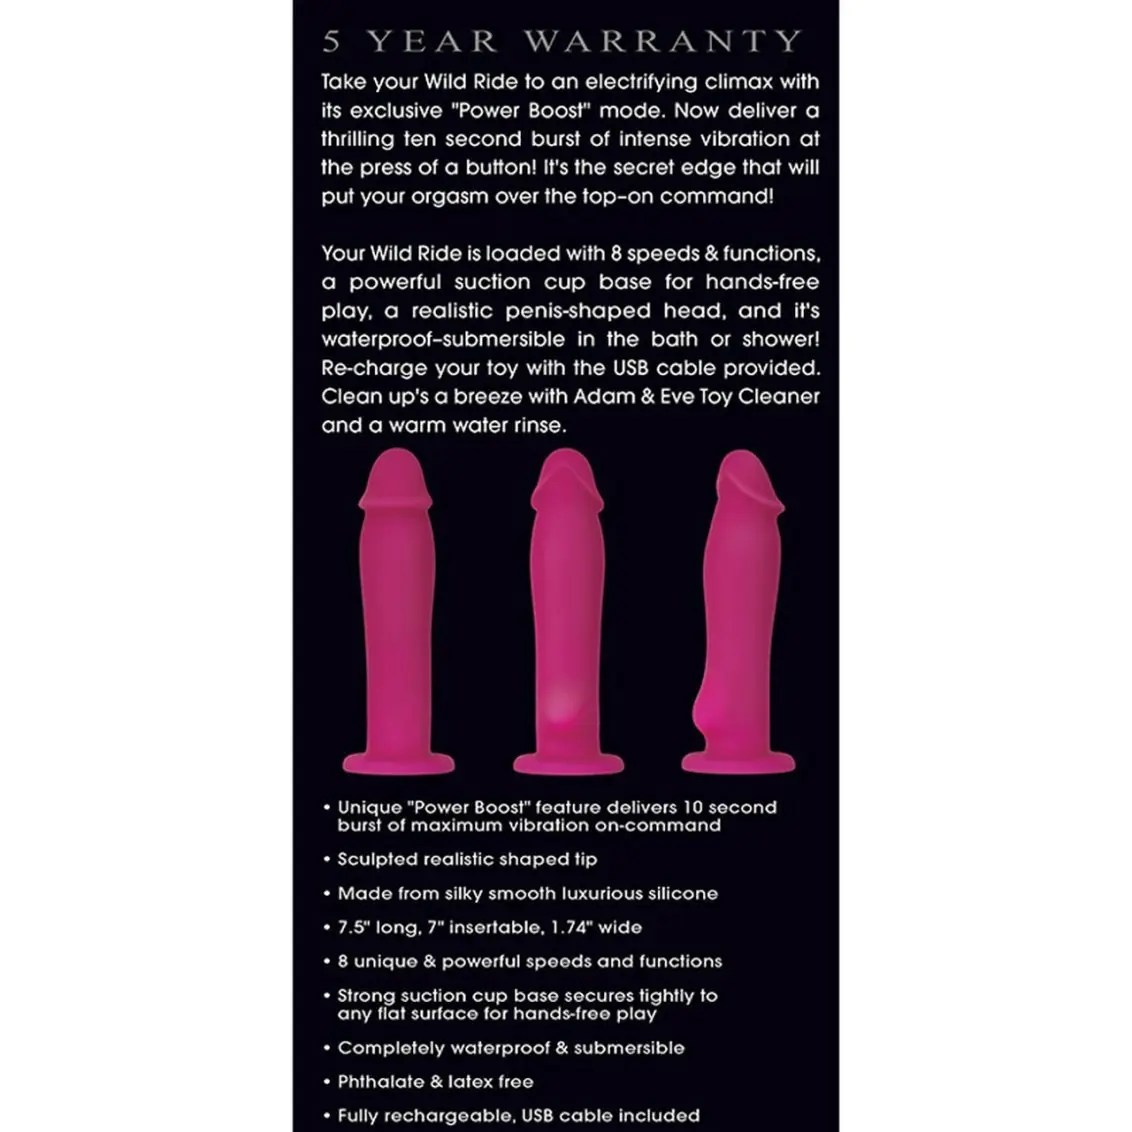 Wild Ride with Power Boost Rechargeable Silicone Vibrator